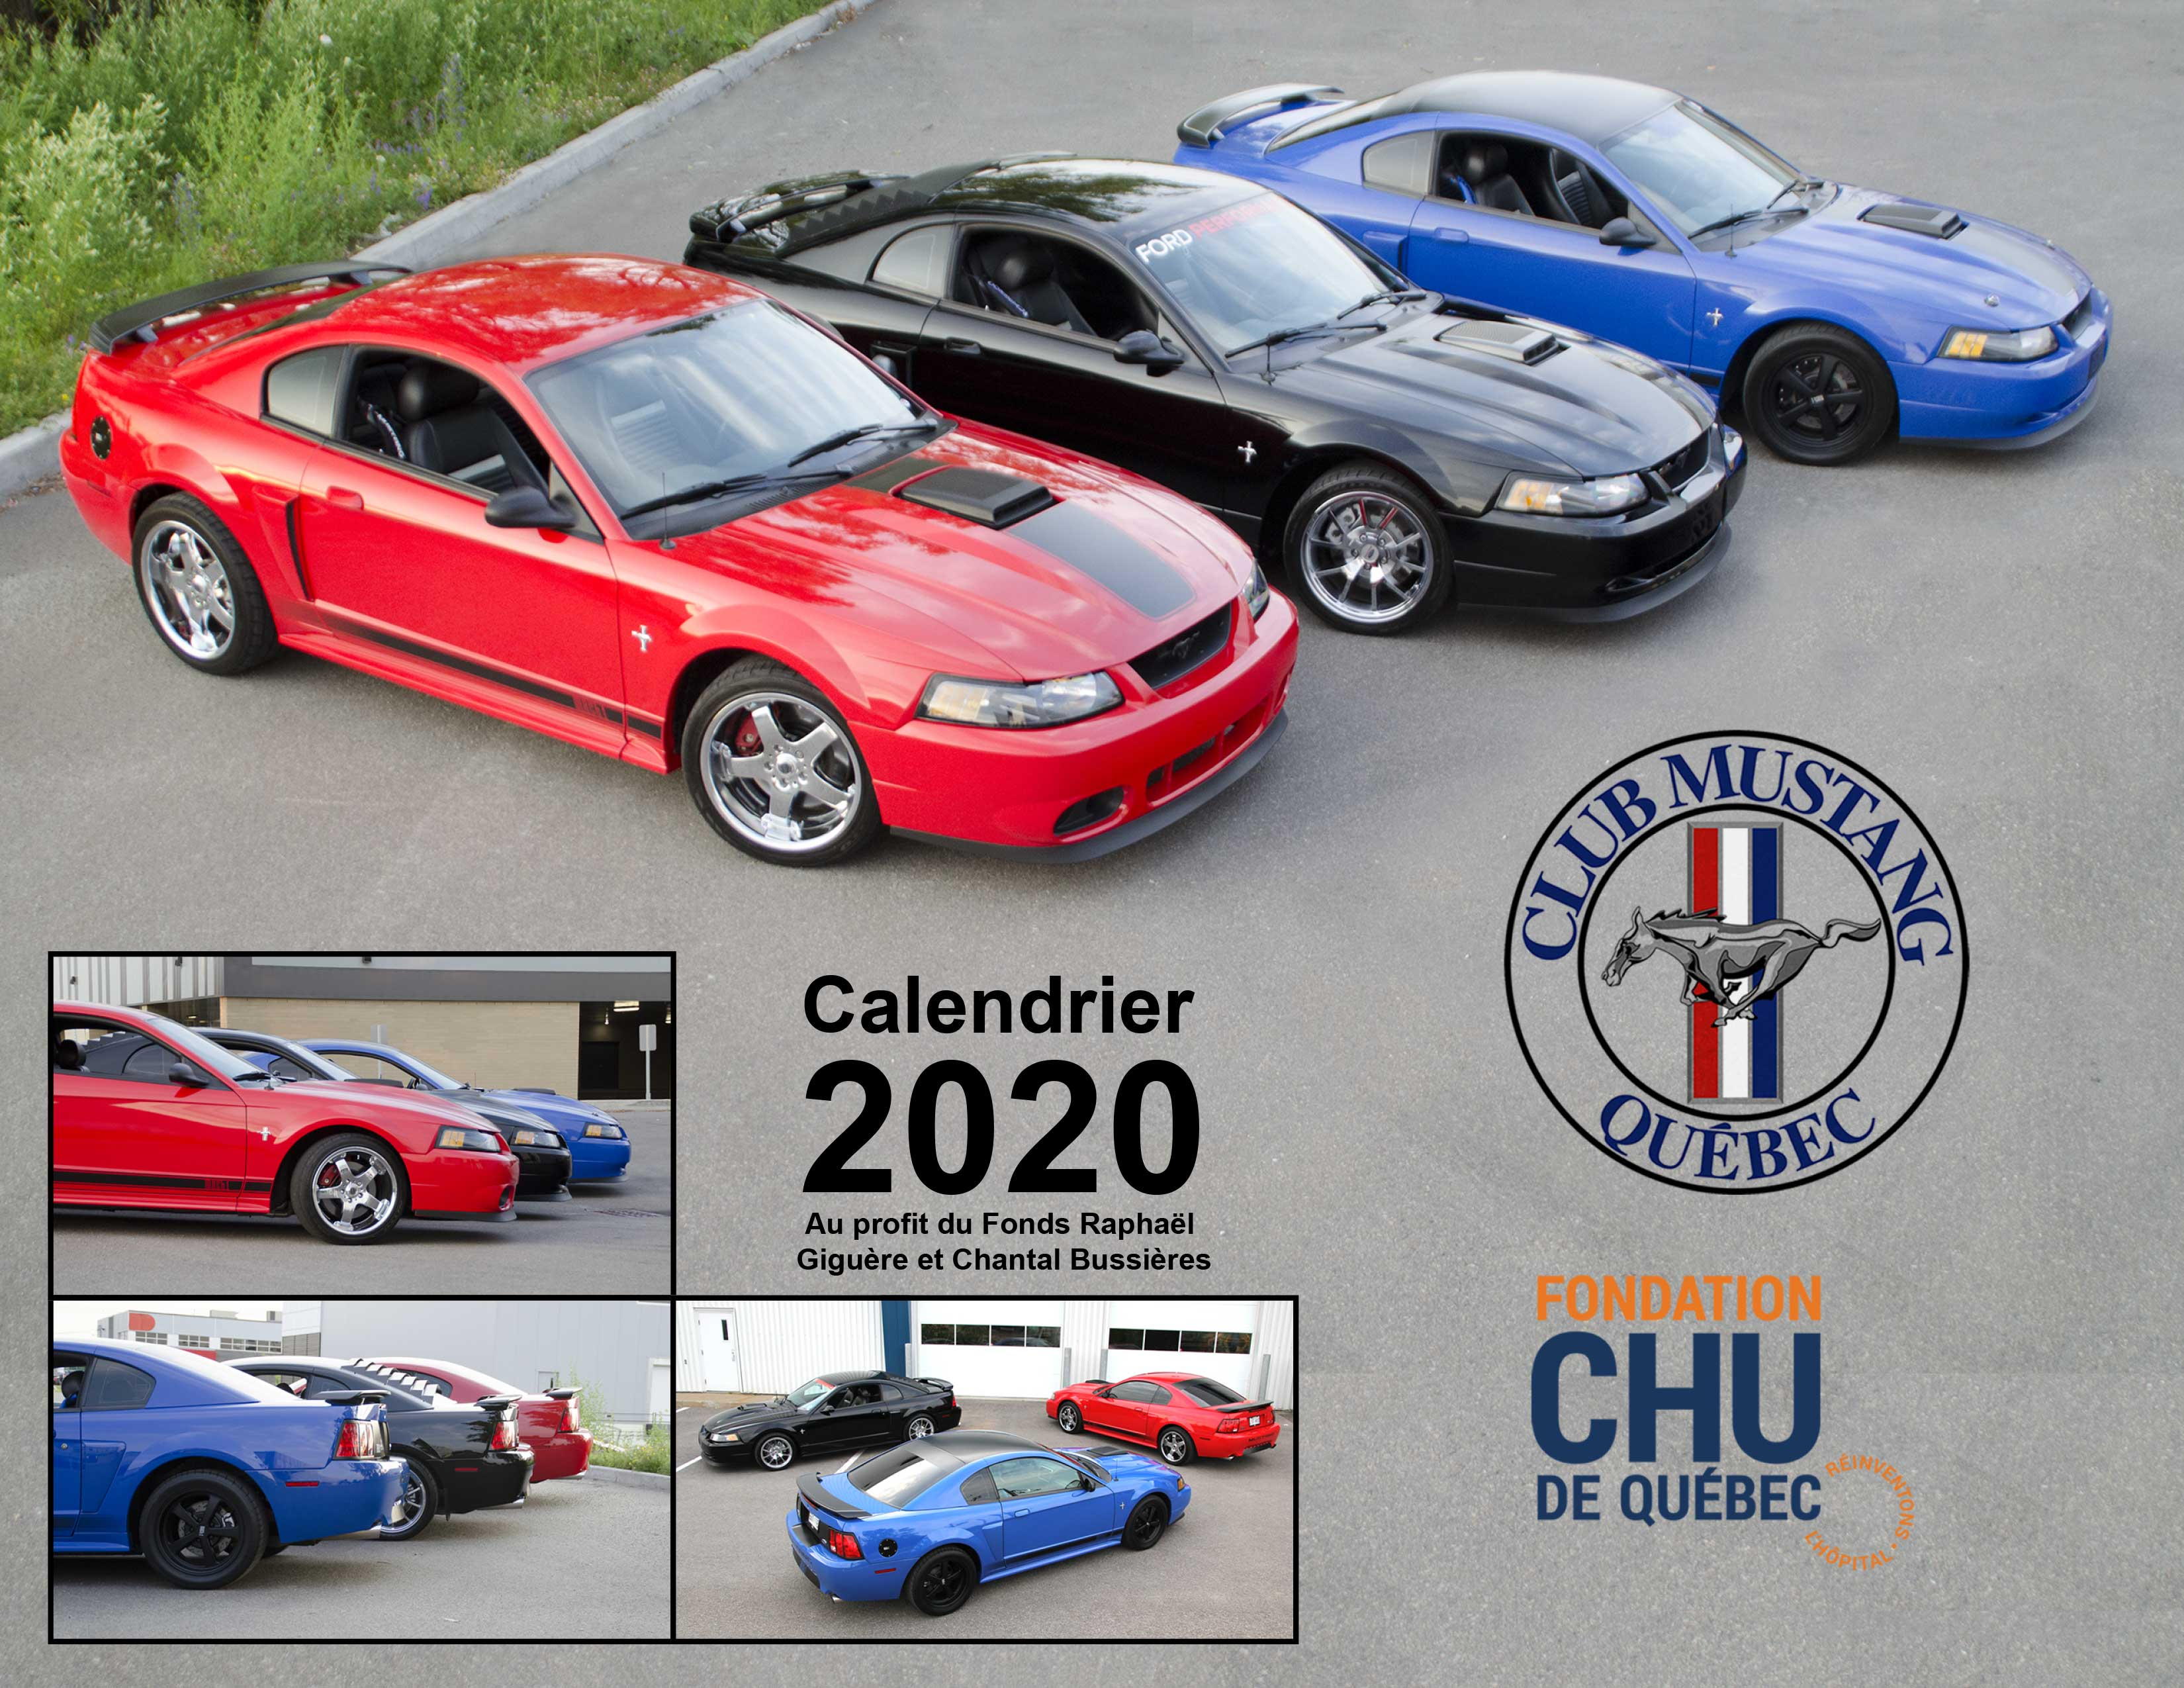 Calendrier 2020 Sport.Calendrier 2020 Club Mustang Quebec